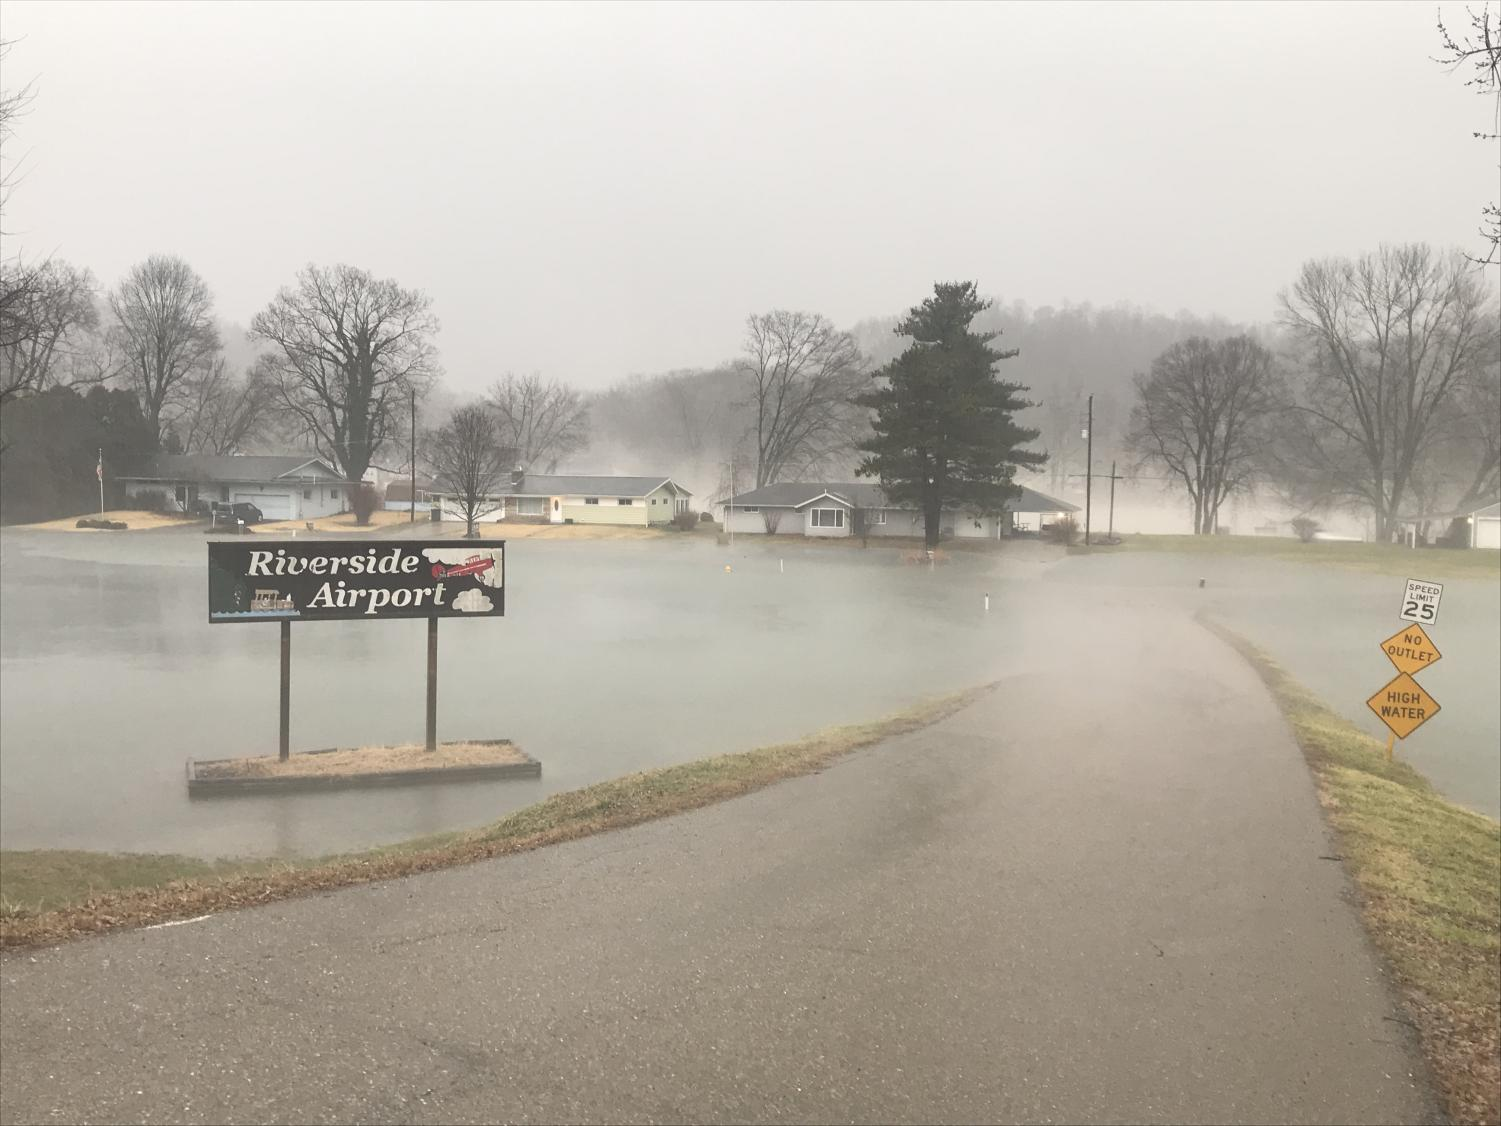 Riverside Airport Road, the main road into Riverside Airport, is completely under water as of Tuesday afternoon.